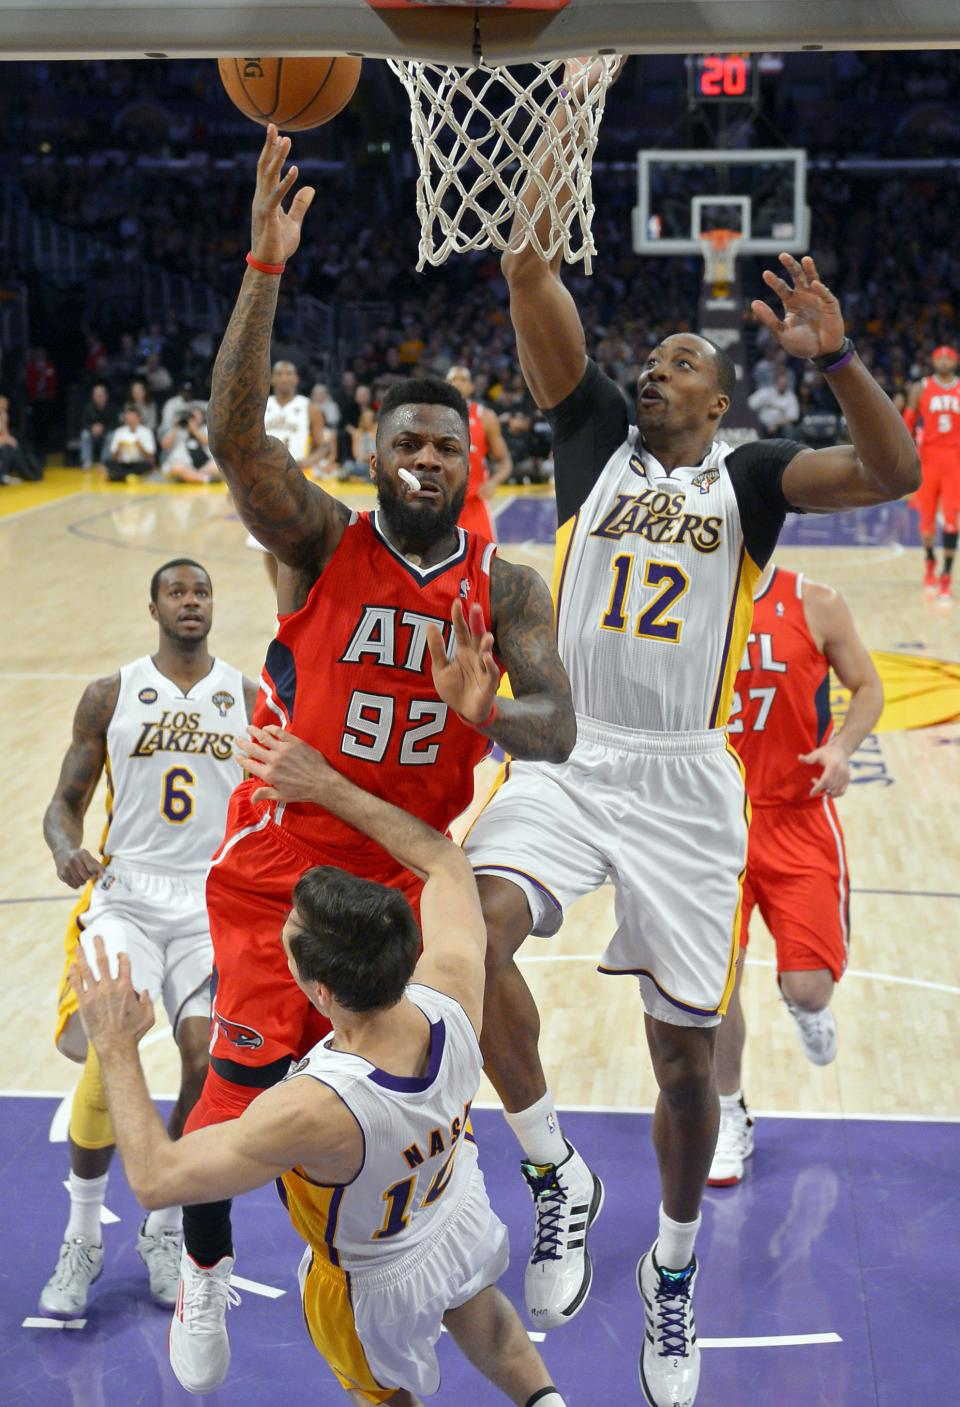 Atlanta Hawks forward DeShawn Stevenson, second from left, puts up a shot as he knocks over Los Angeles Lakers guard Steve Nash, below while center Dwight Howard, right, defends and forward Earl Clark looks on during the first half of their NBA basketball game, Sunday, March 3, 2013, in Los Angeles. (AP Photo/Mark J. Terrill)